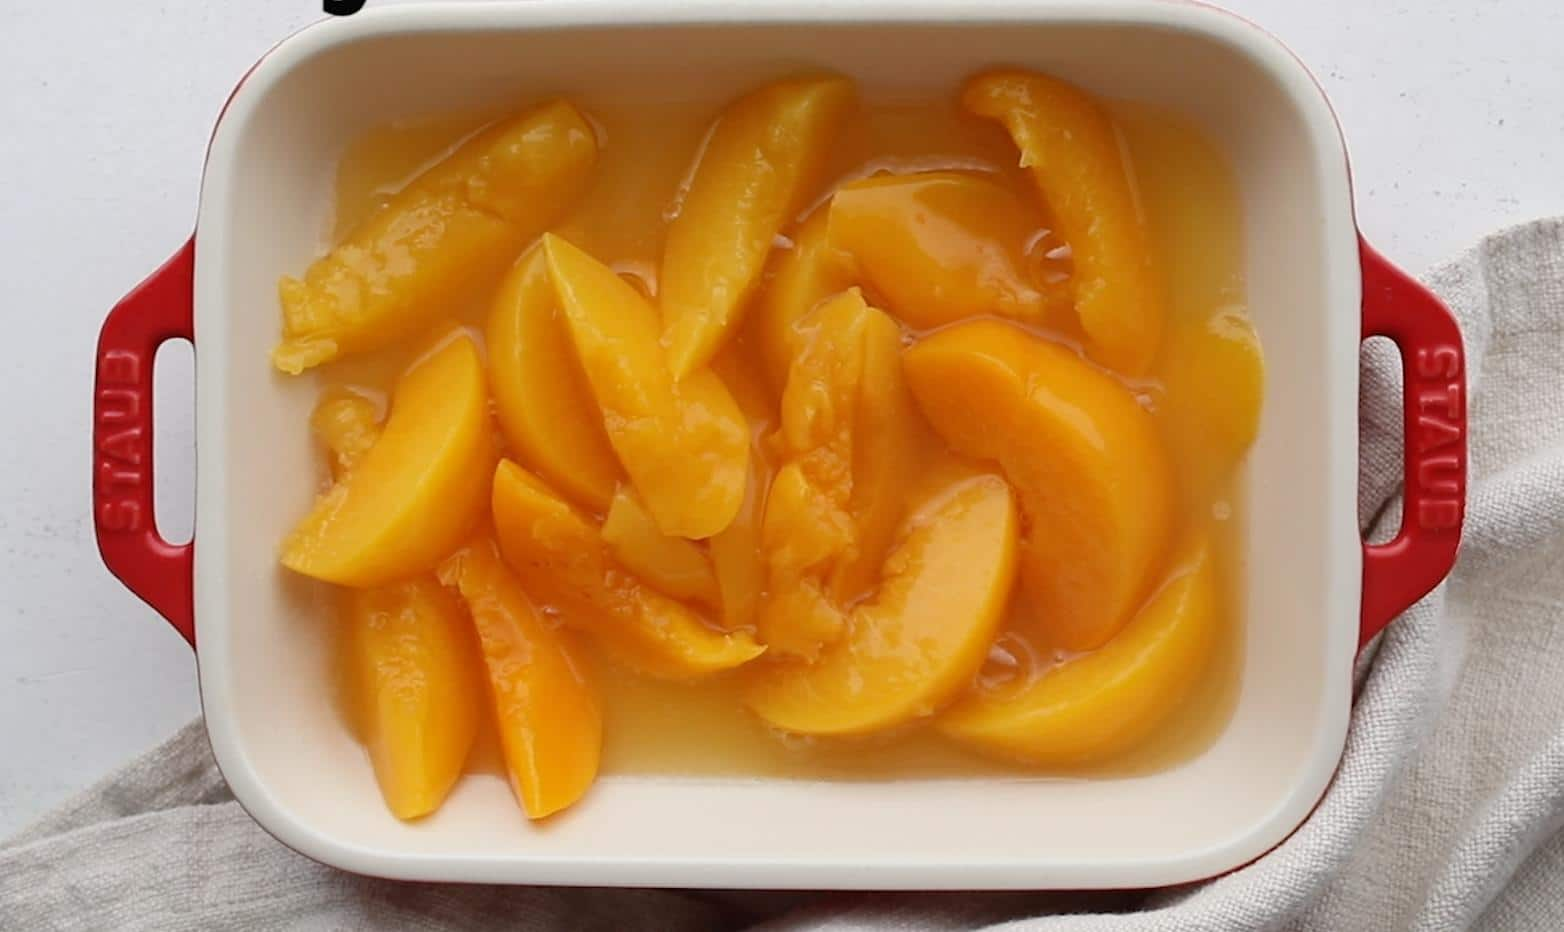 peaches in cast iron skillet ontop of a blue towel